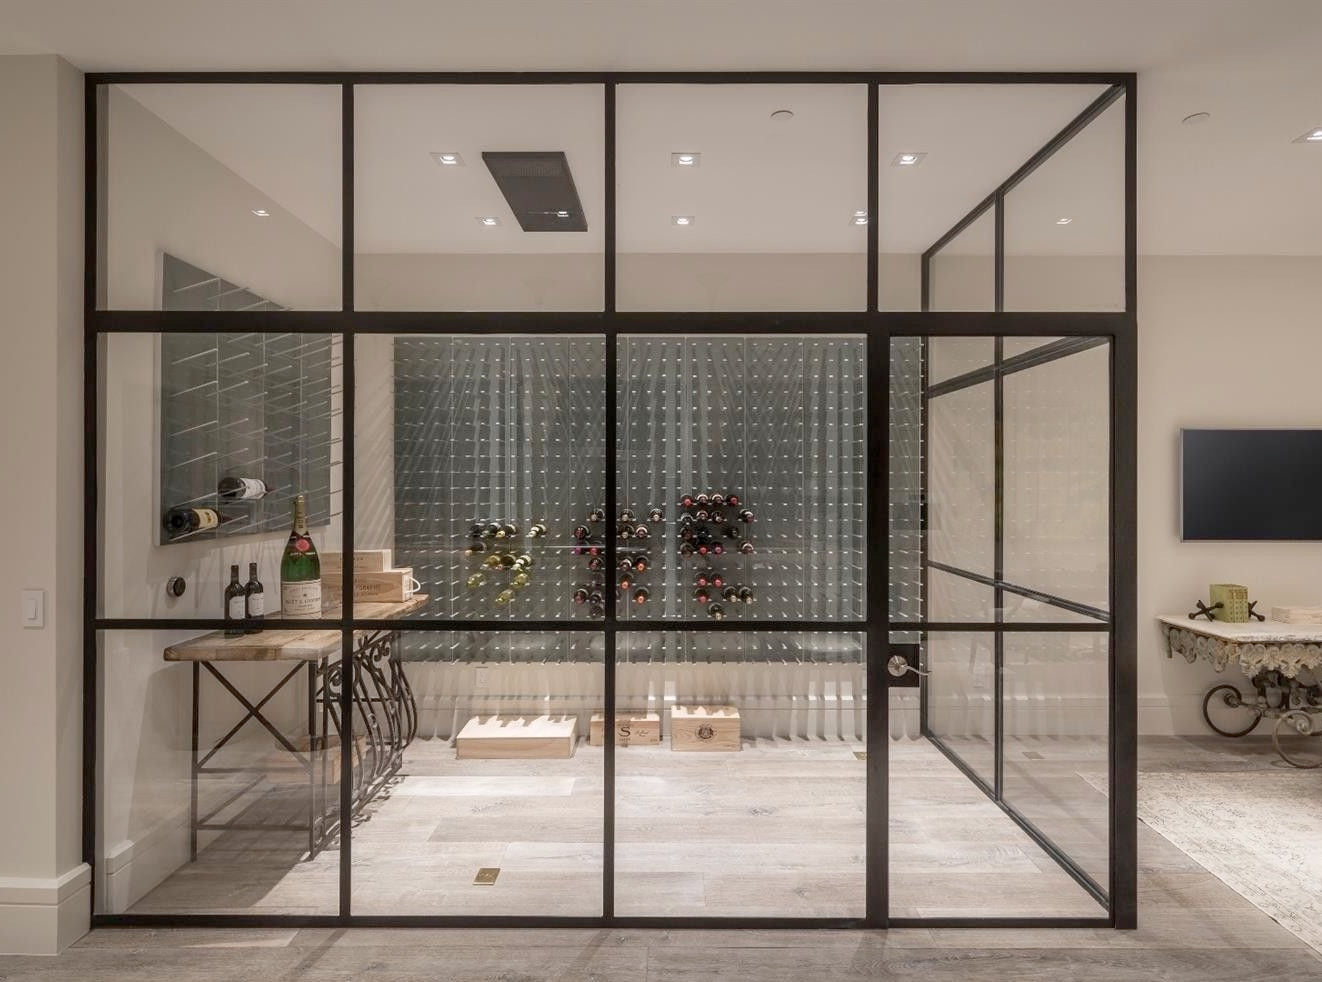 sealed air tight glass wine room